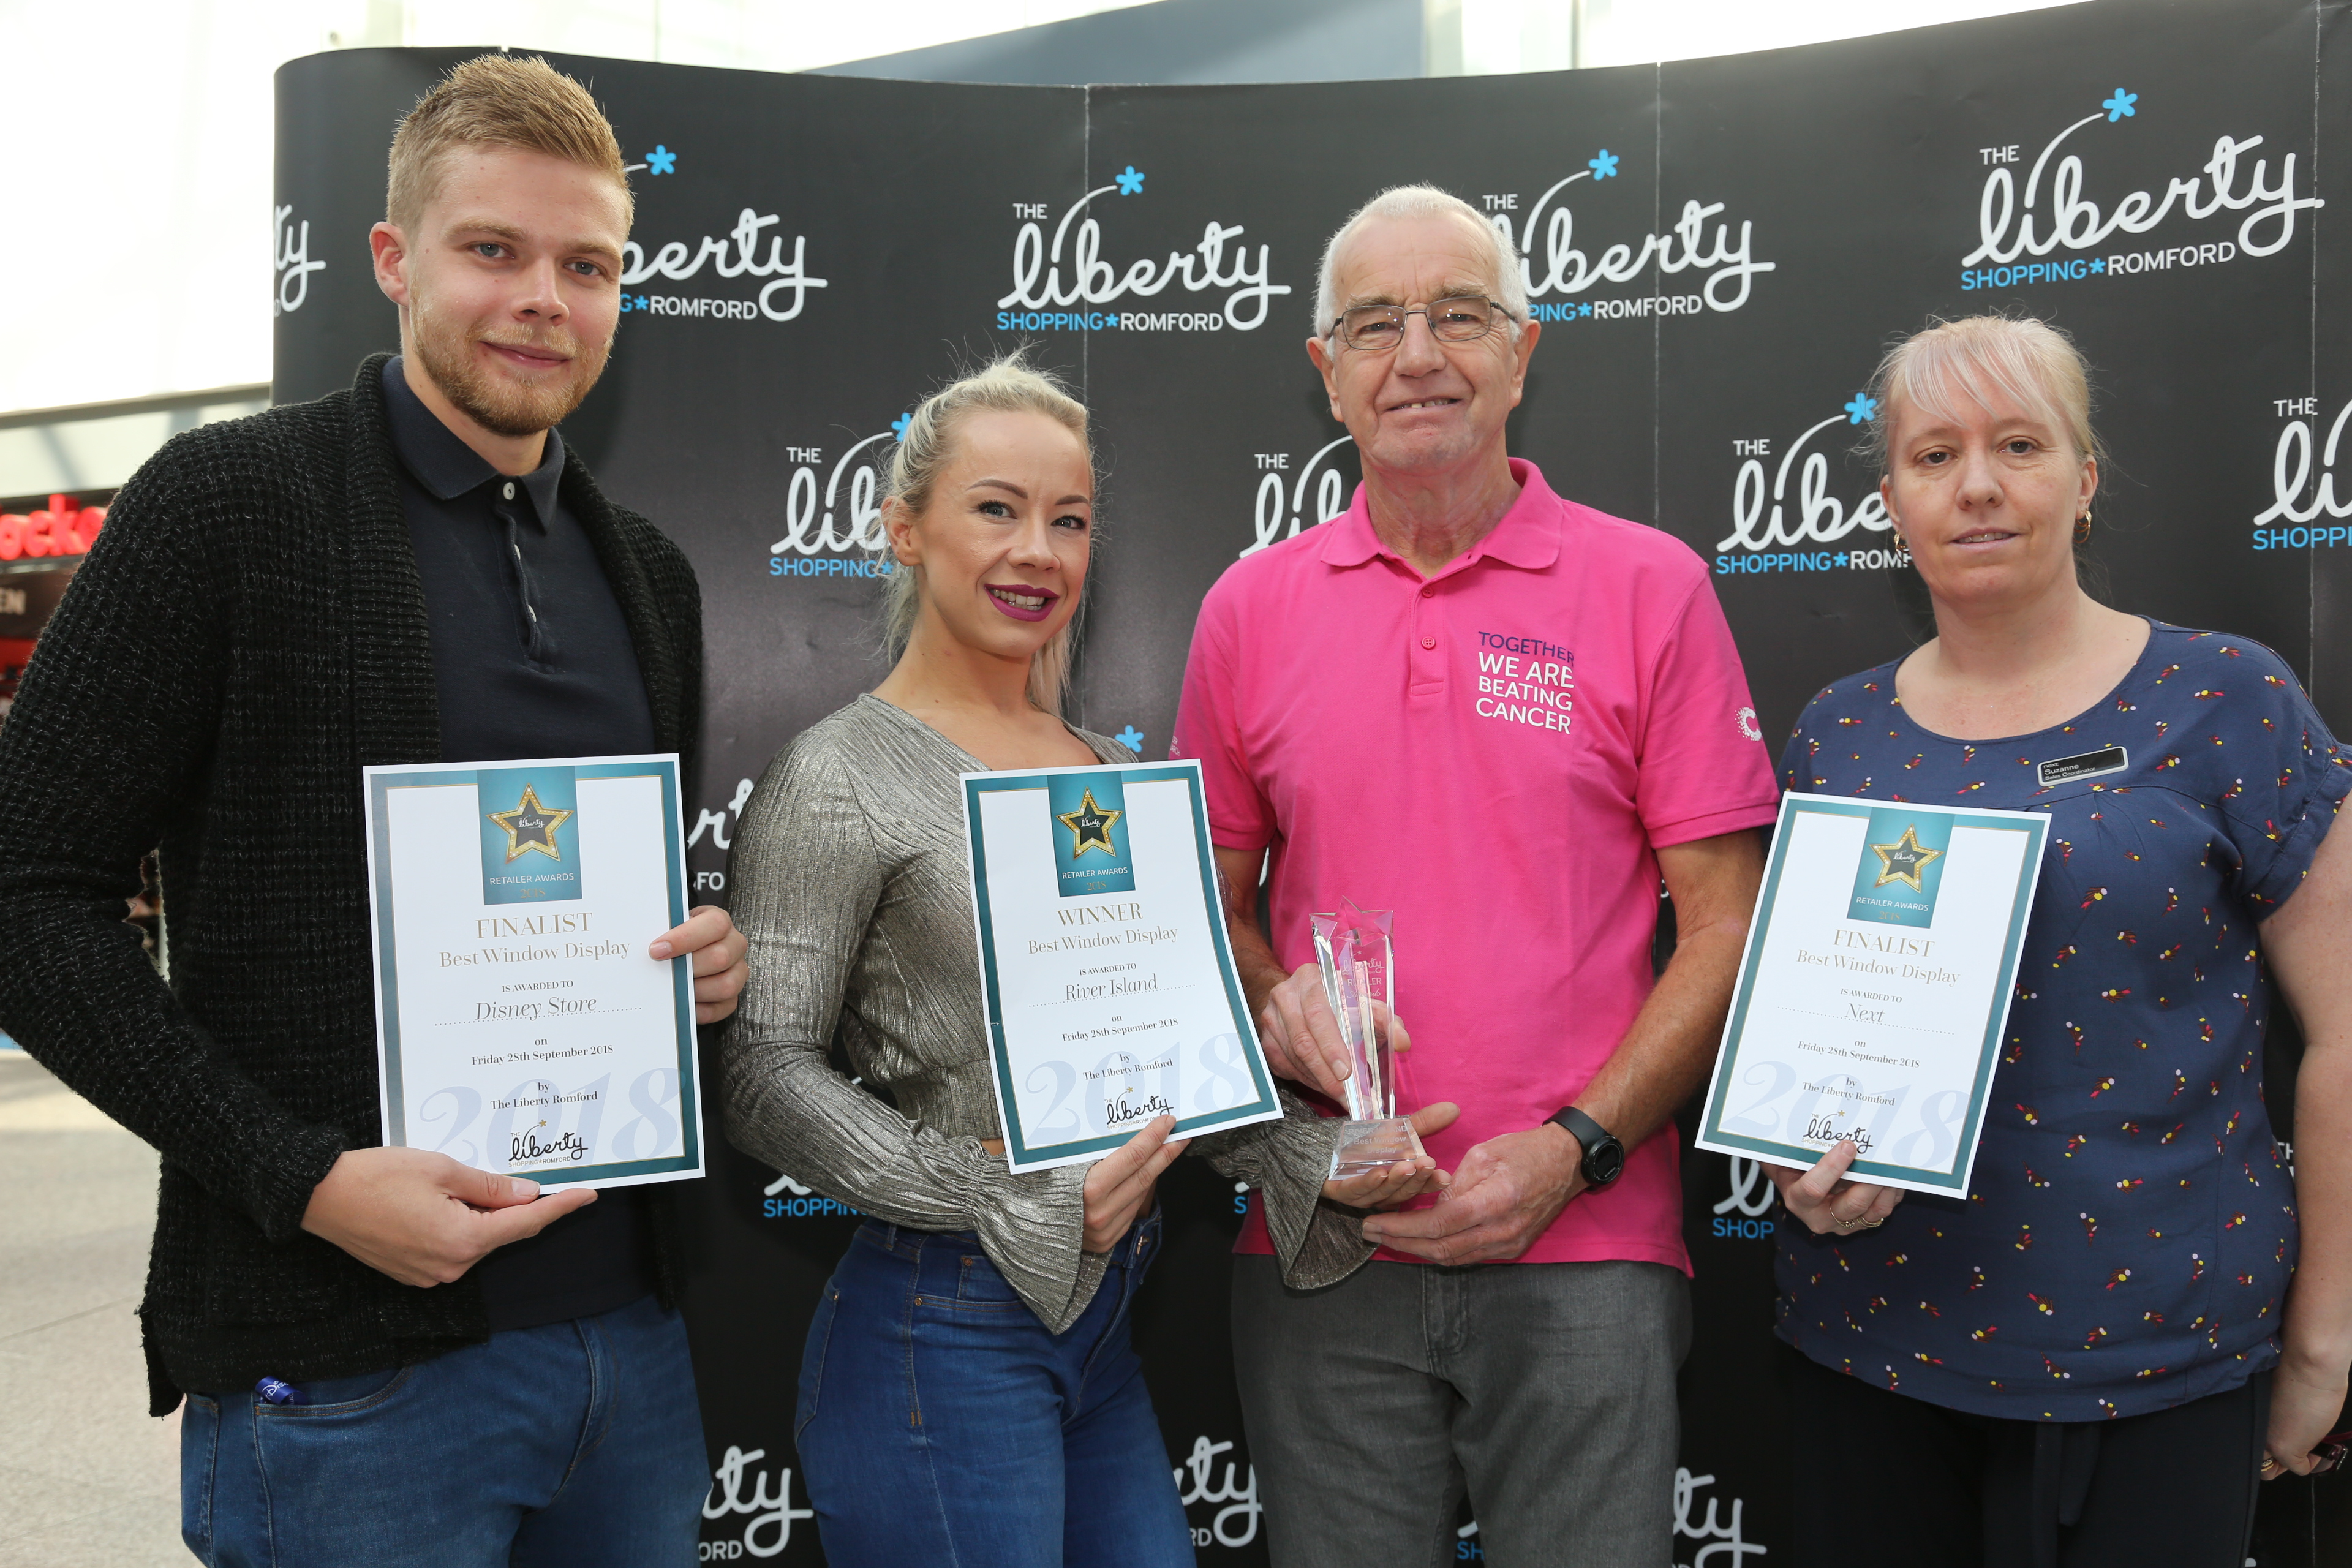 Image: S.Rowse. Best Window Display category finalist Michael Davey from The Disney Store, , Winner Sarah White from River Island with Peter Parkin Representative for Cancer Research UK, finalist Sue Giles, from Next